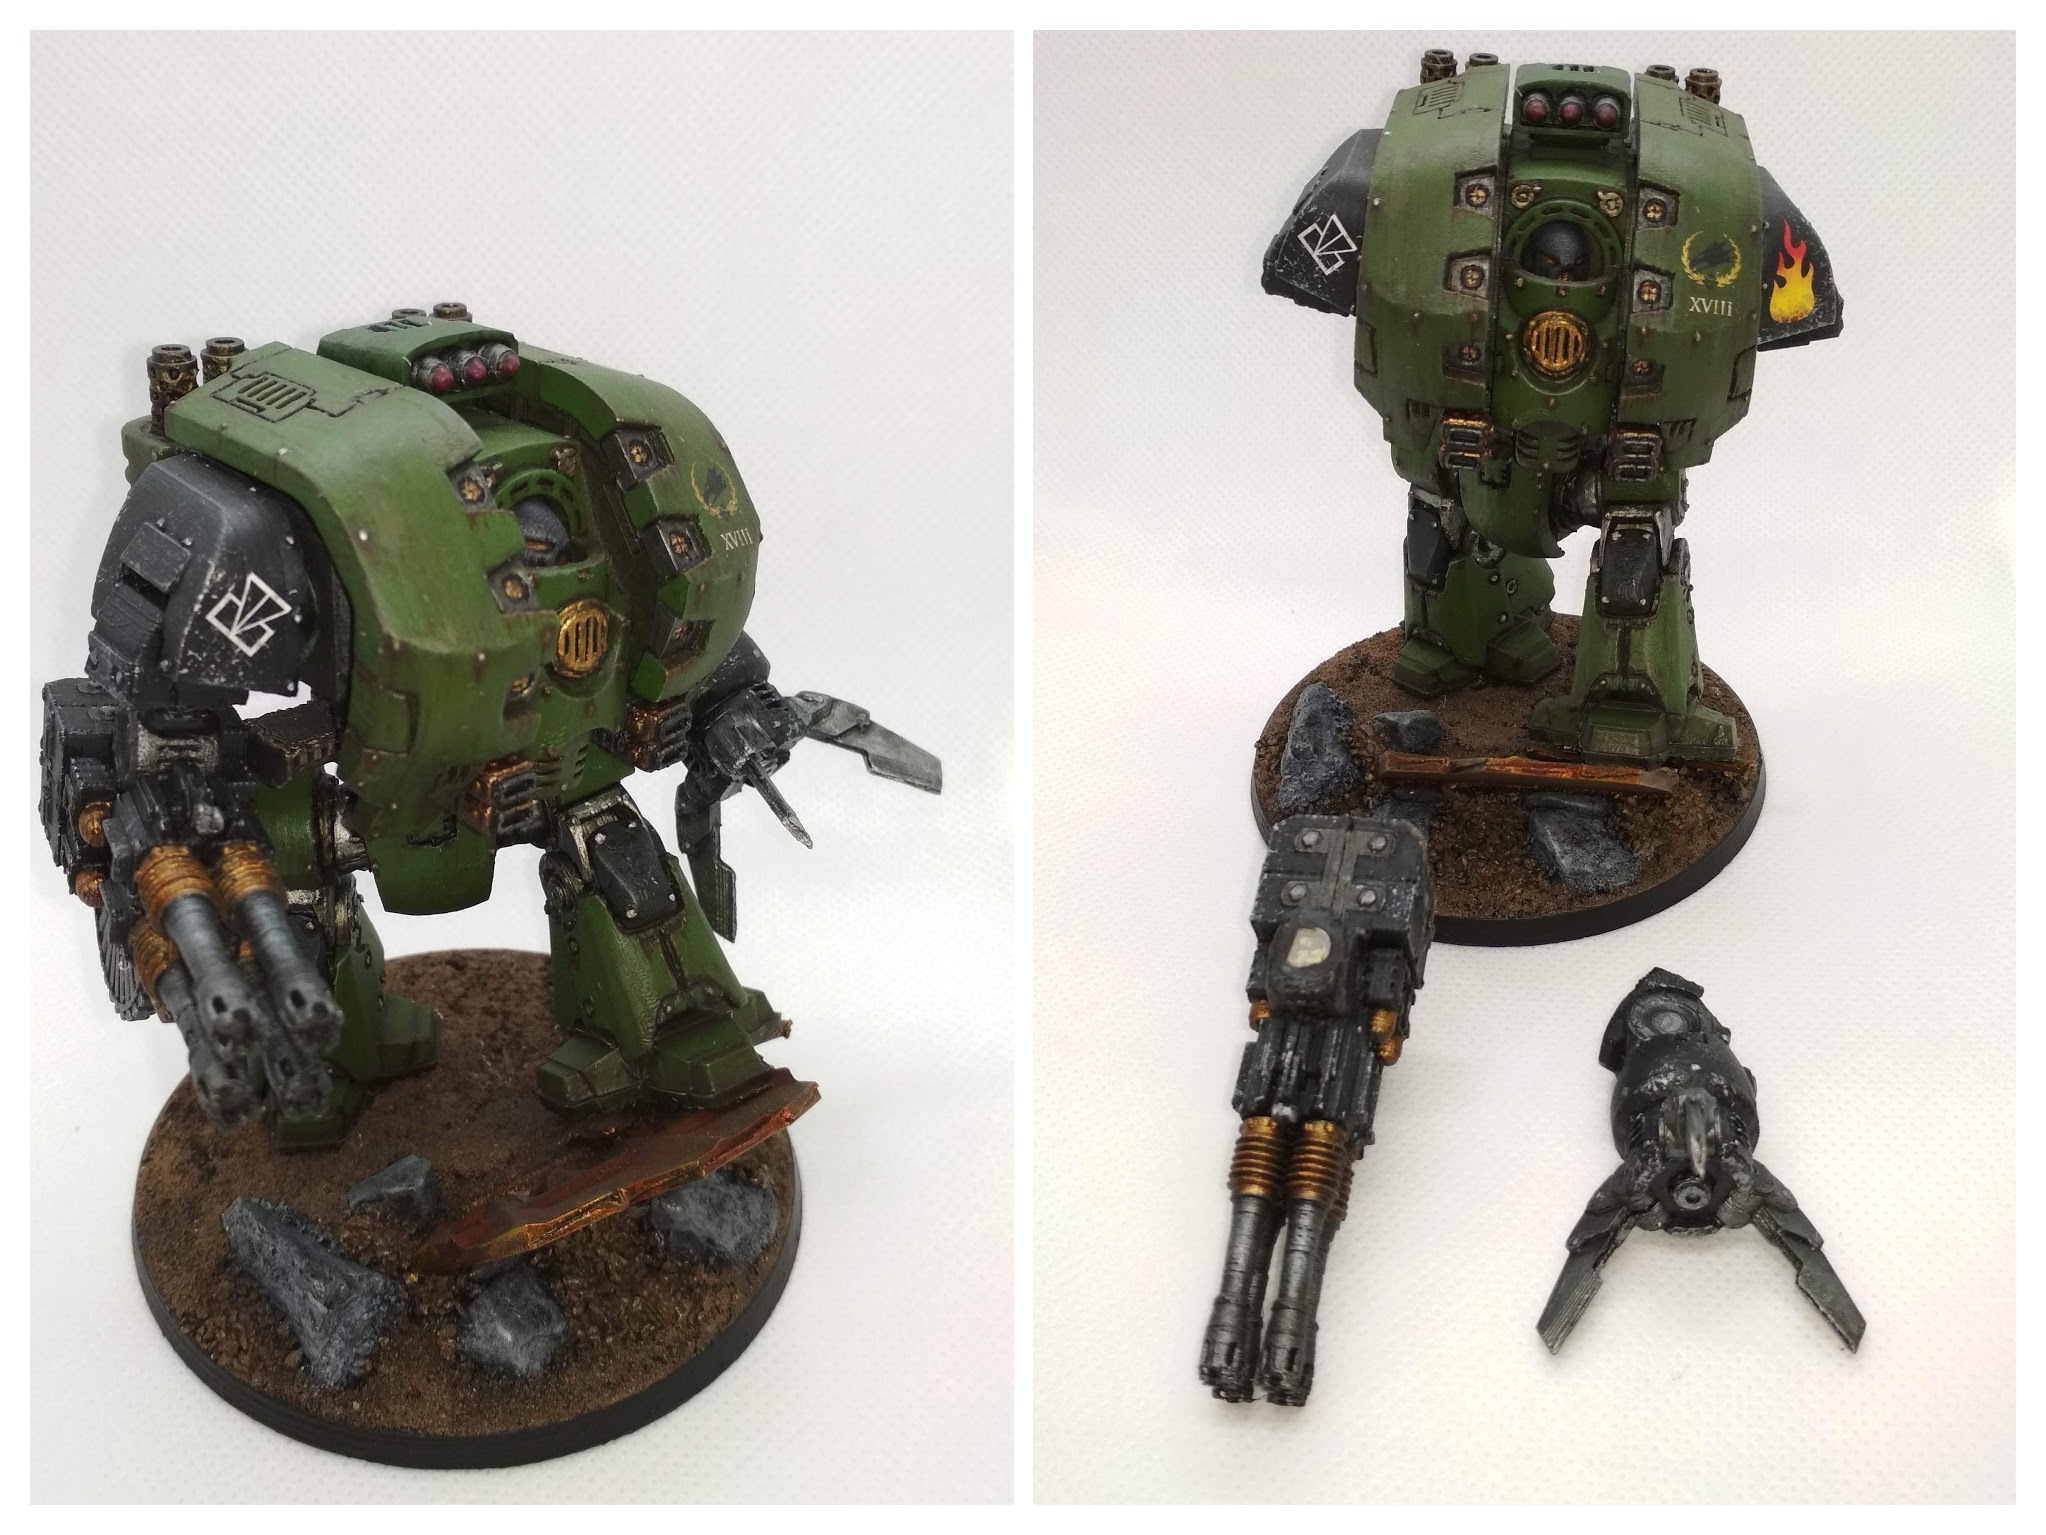 3D printed Leviathan Dreadnought